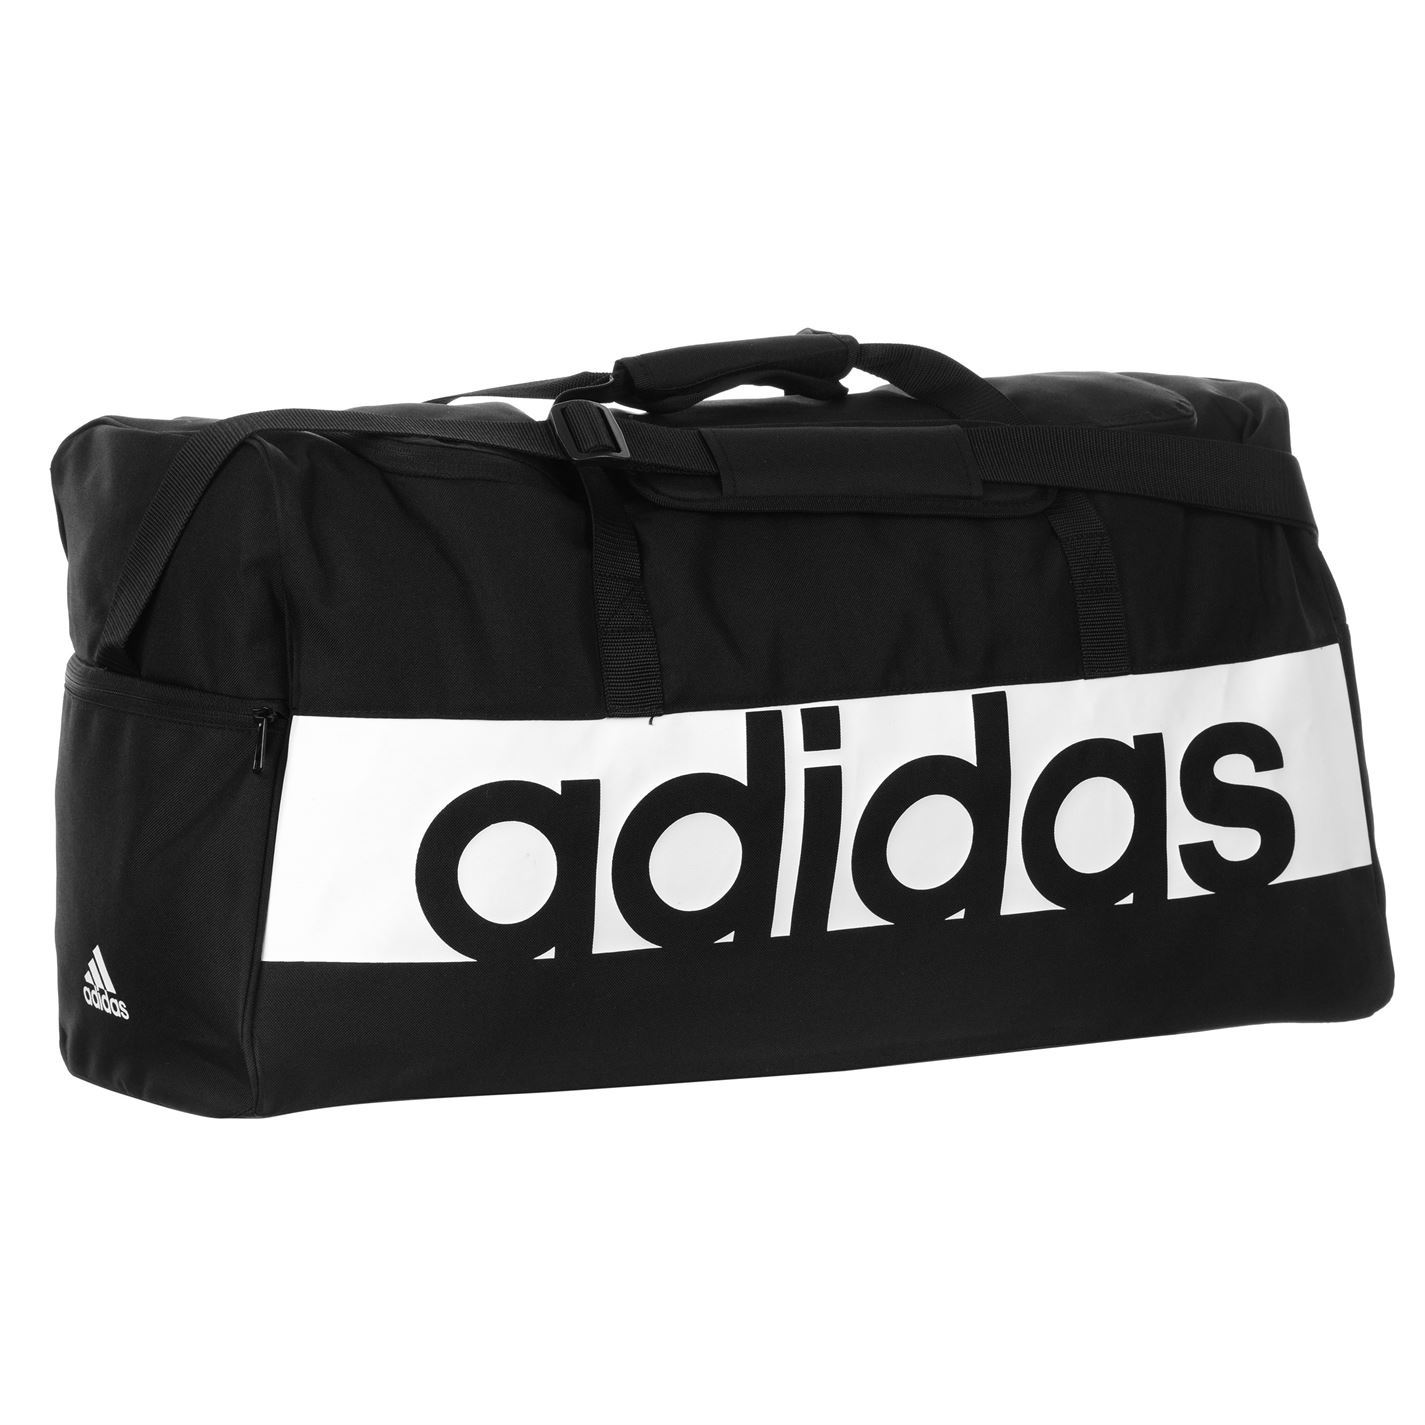 c7974ee601 adidas Linear Performance Duffel Bag Large Black White Sports Gym ...